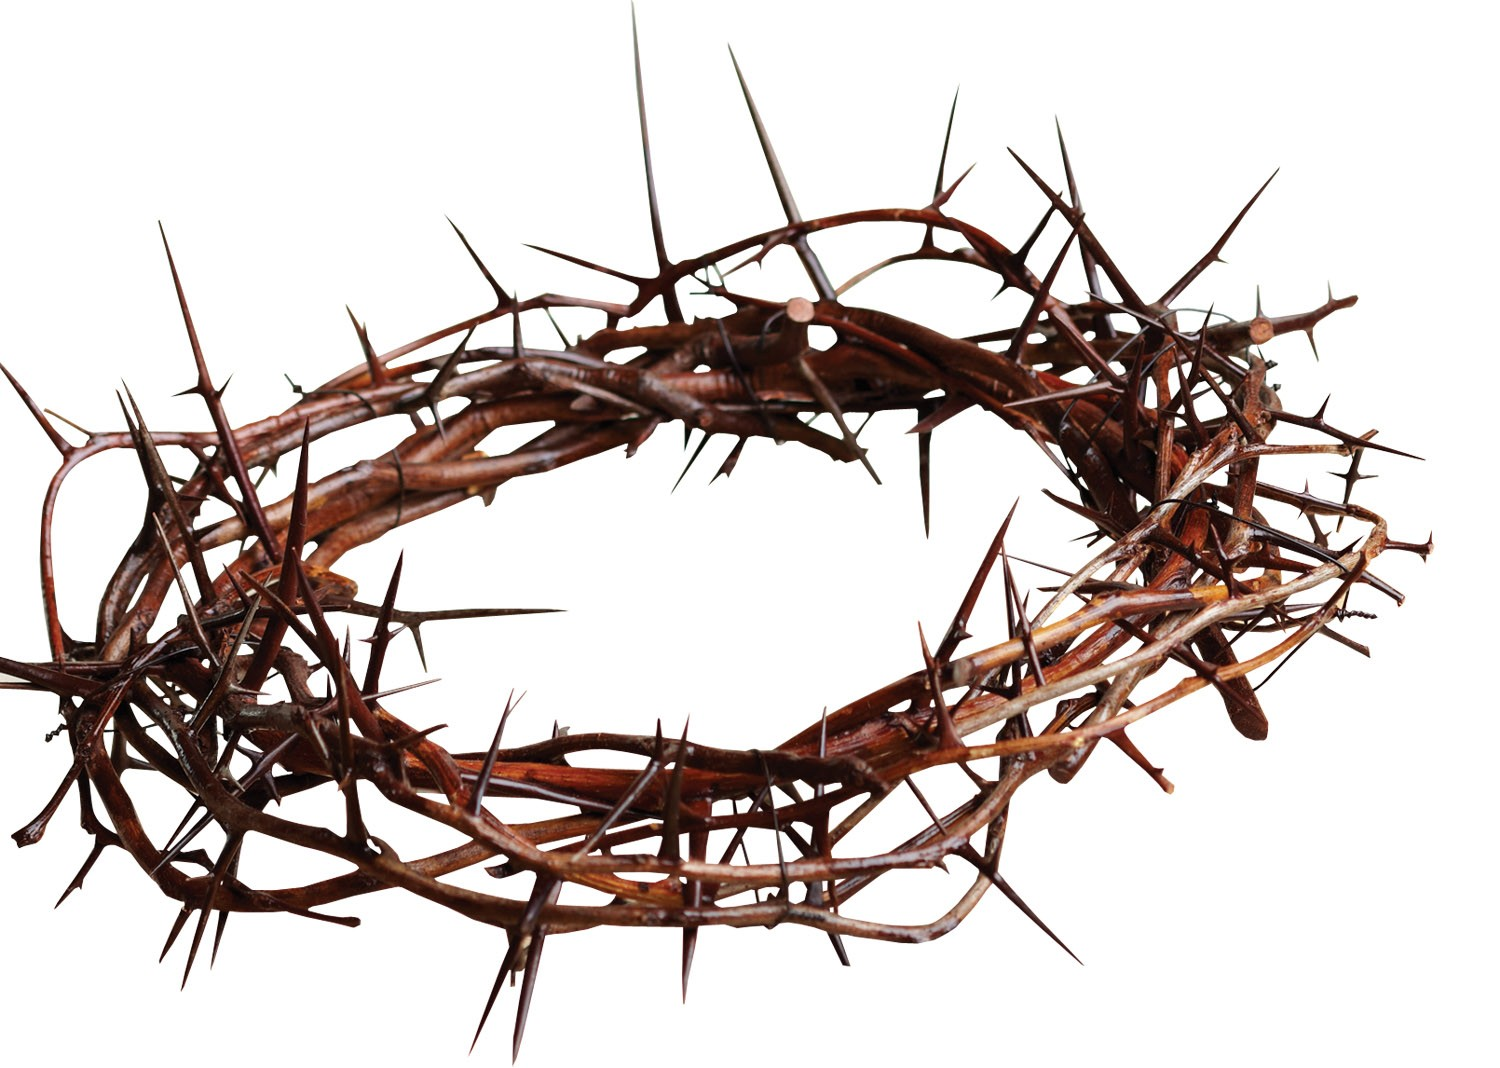 Jesus Thorn Crown Art Crown of thorns clip art